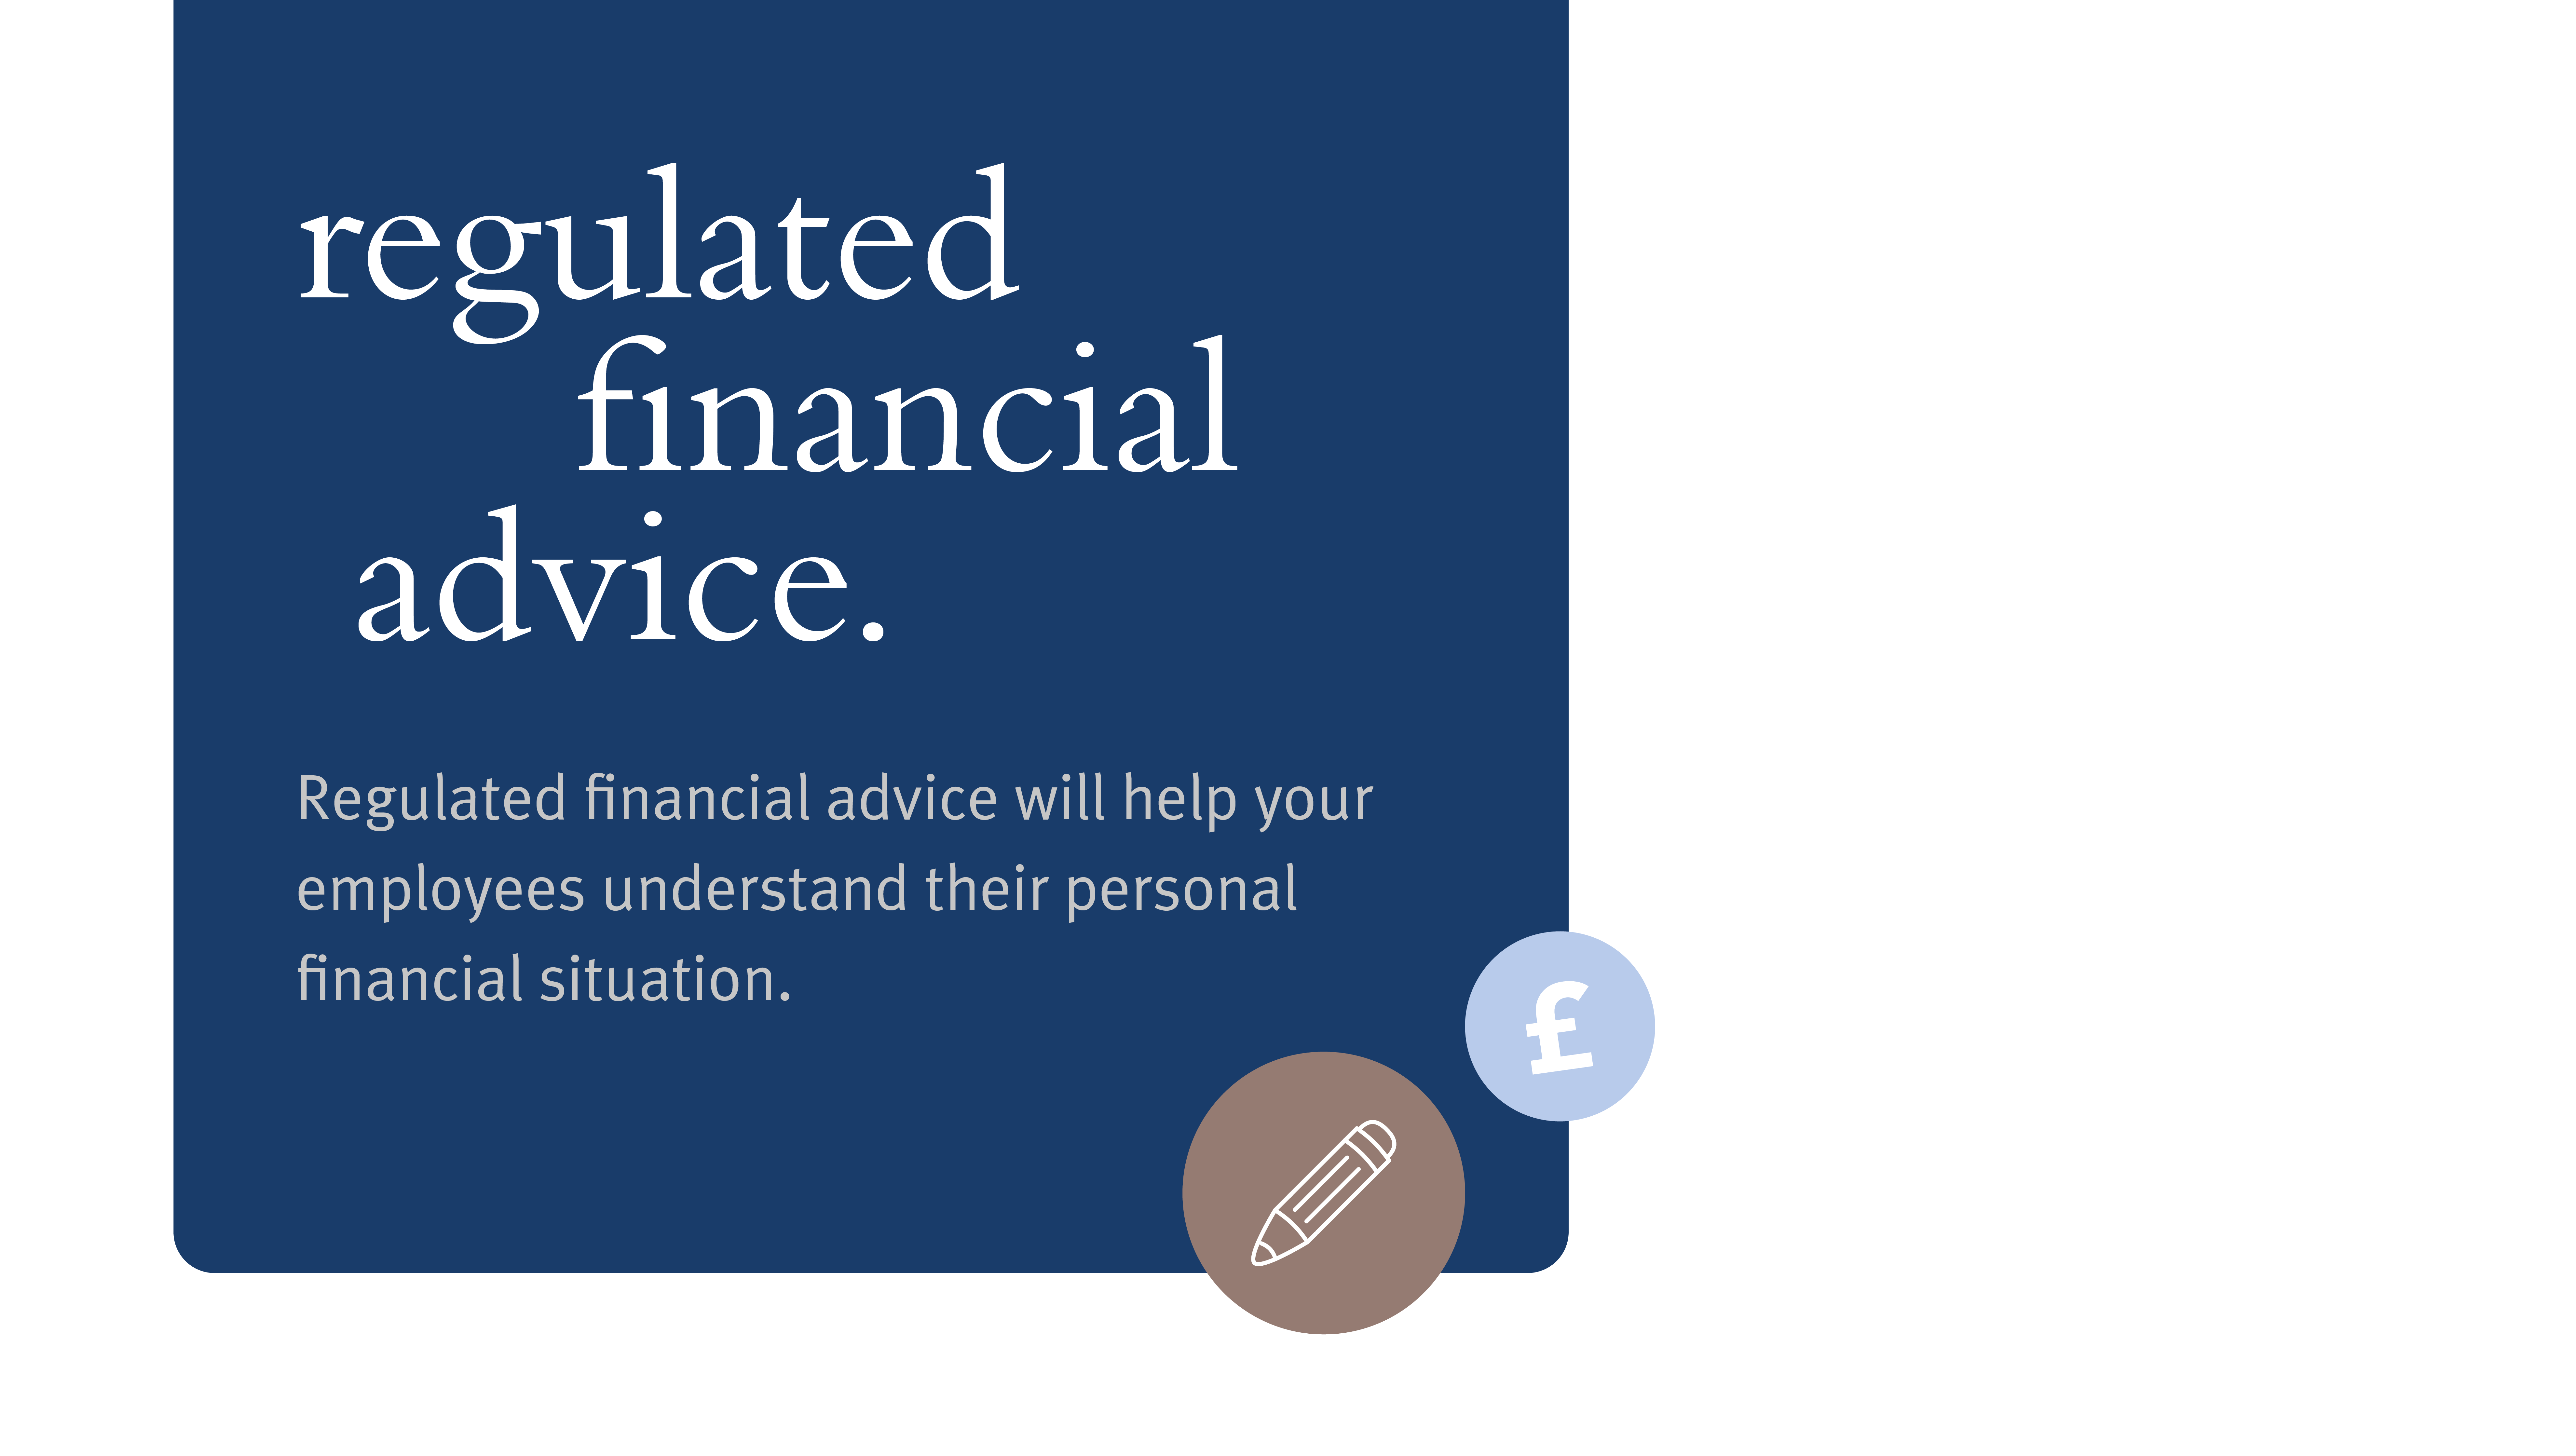 Image reads: Regulated financial advice. Regulated financial advice will help your employees understand their personal financial situation.